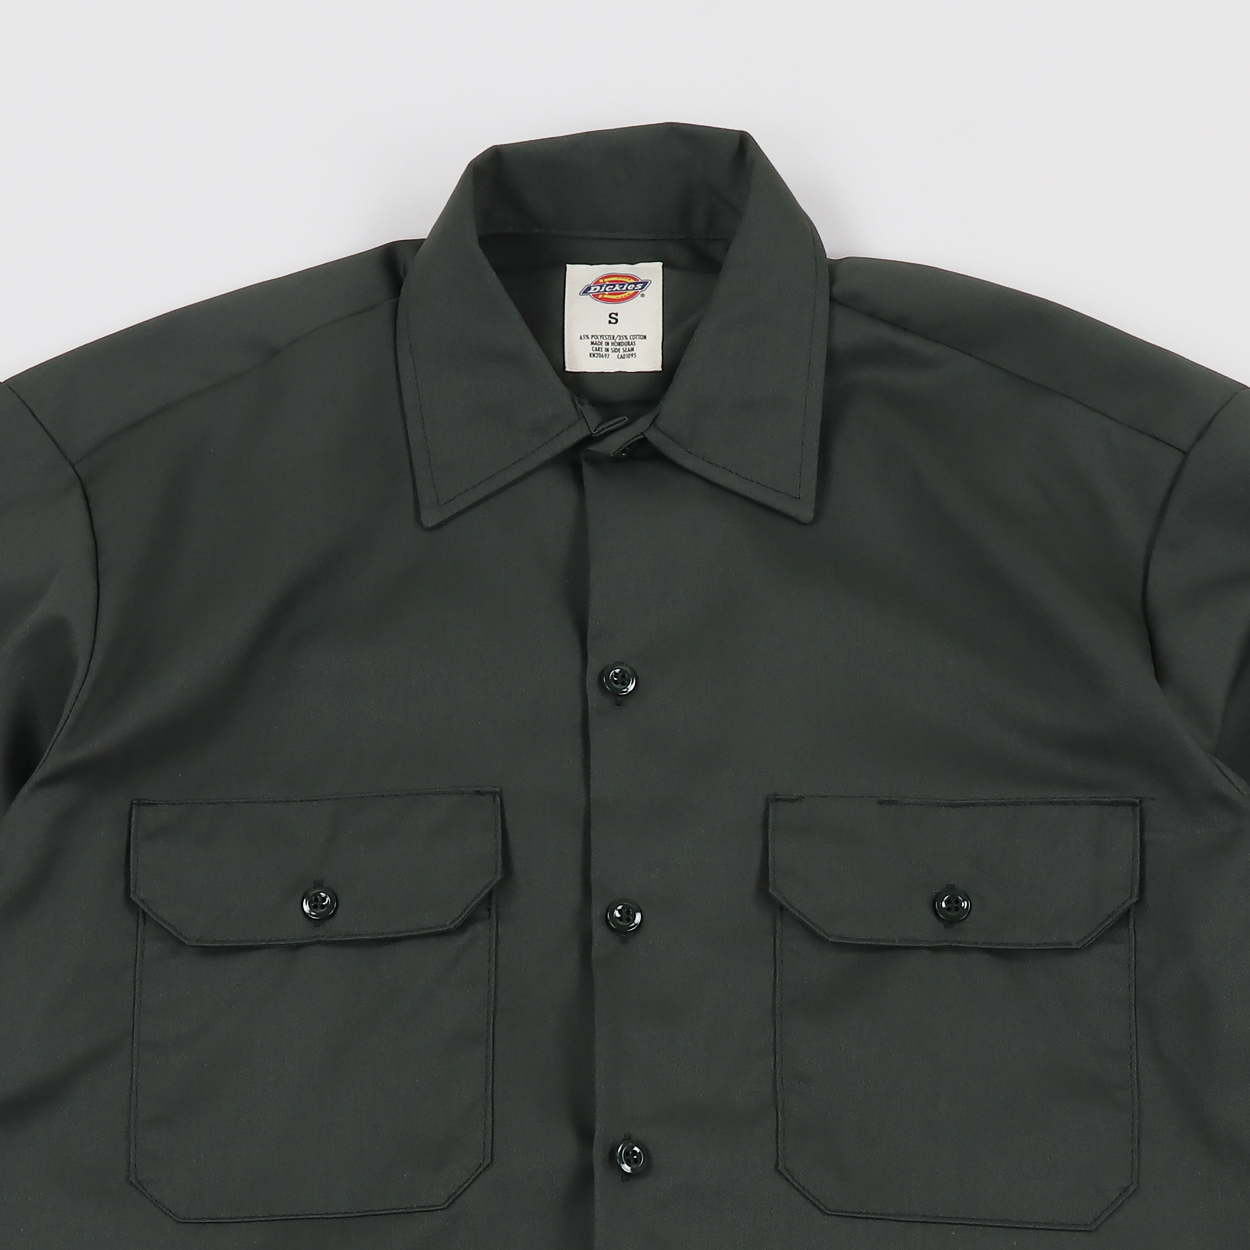 a2746464790 A short sleeve shirt from Dickies modelled similar to their iconic  workpants. The twill is made from 65% polyester and 35% cotton and it has  two buttoned ...